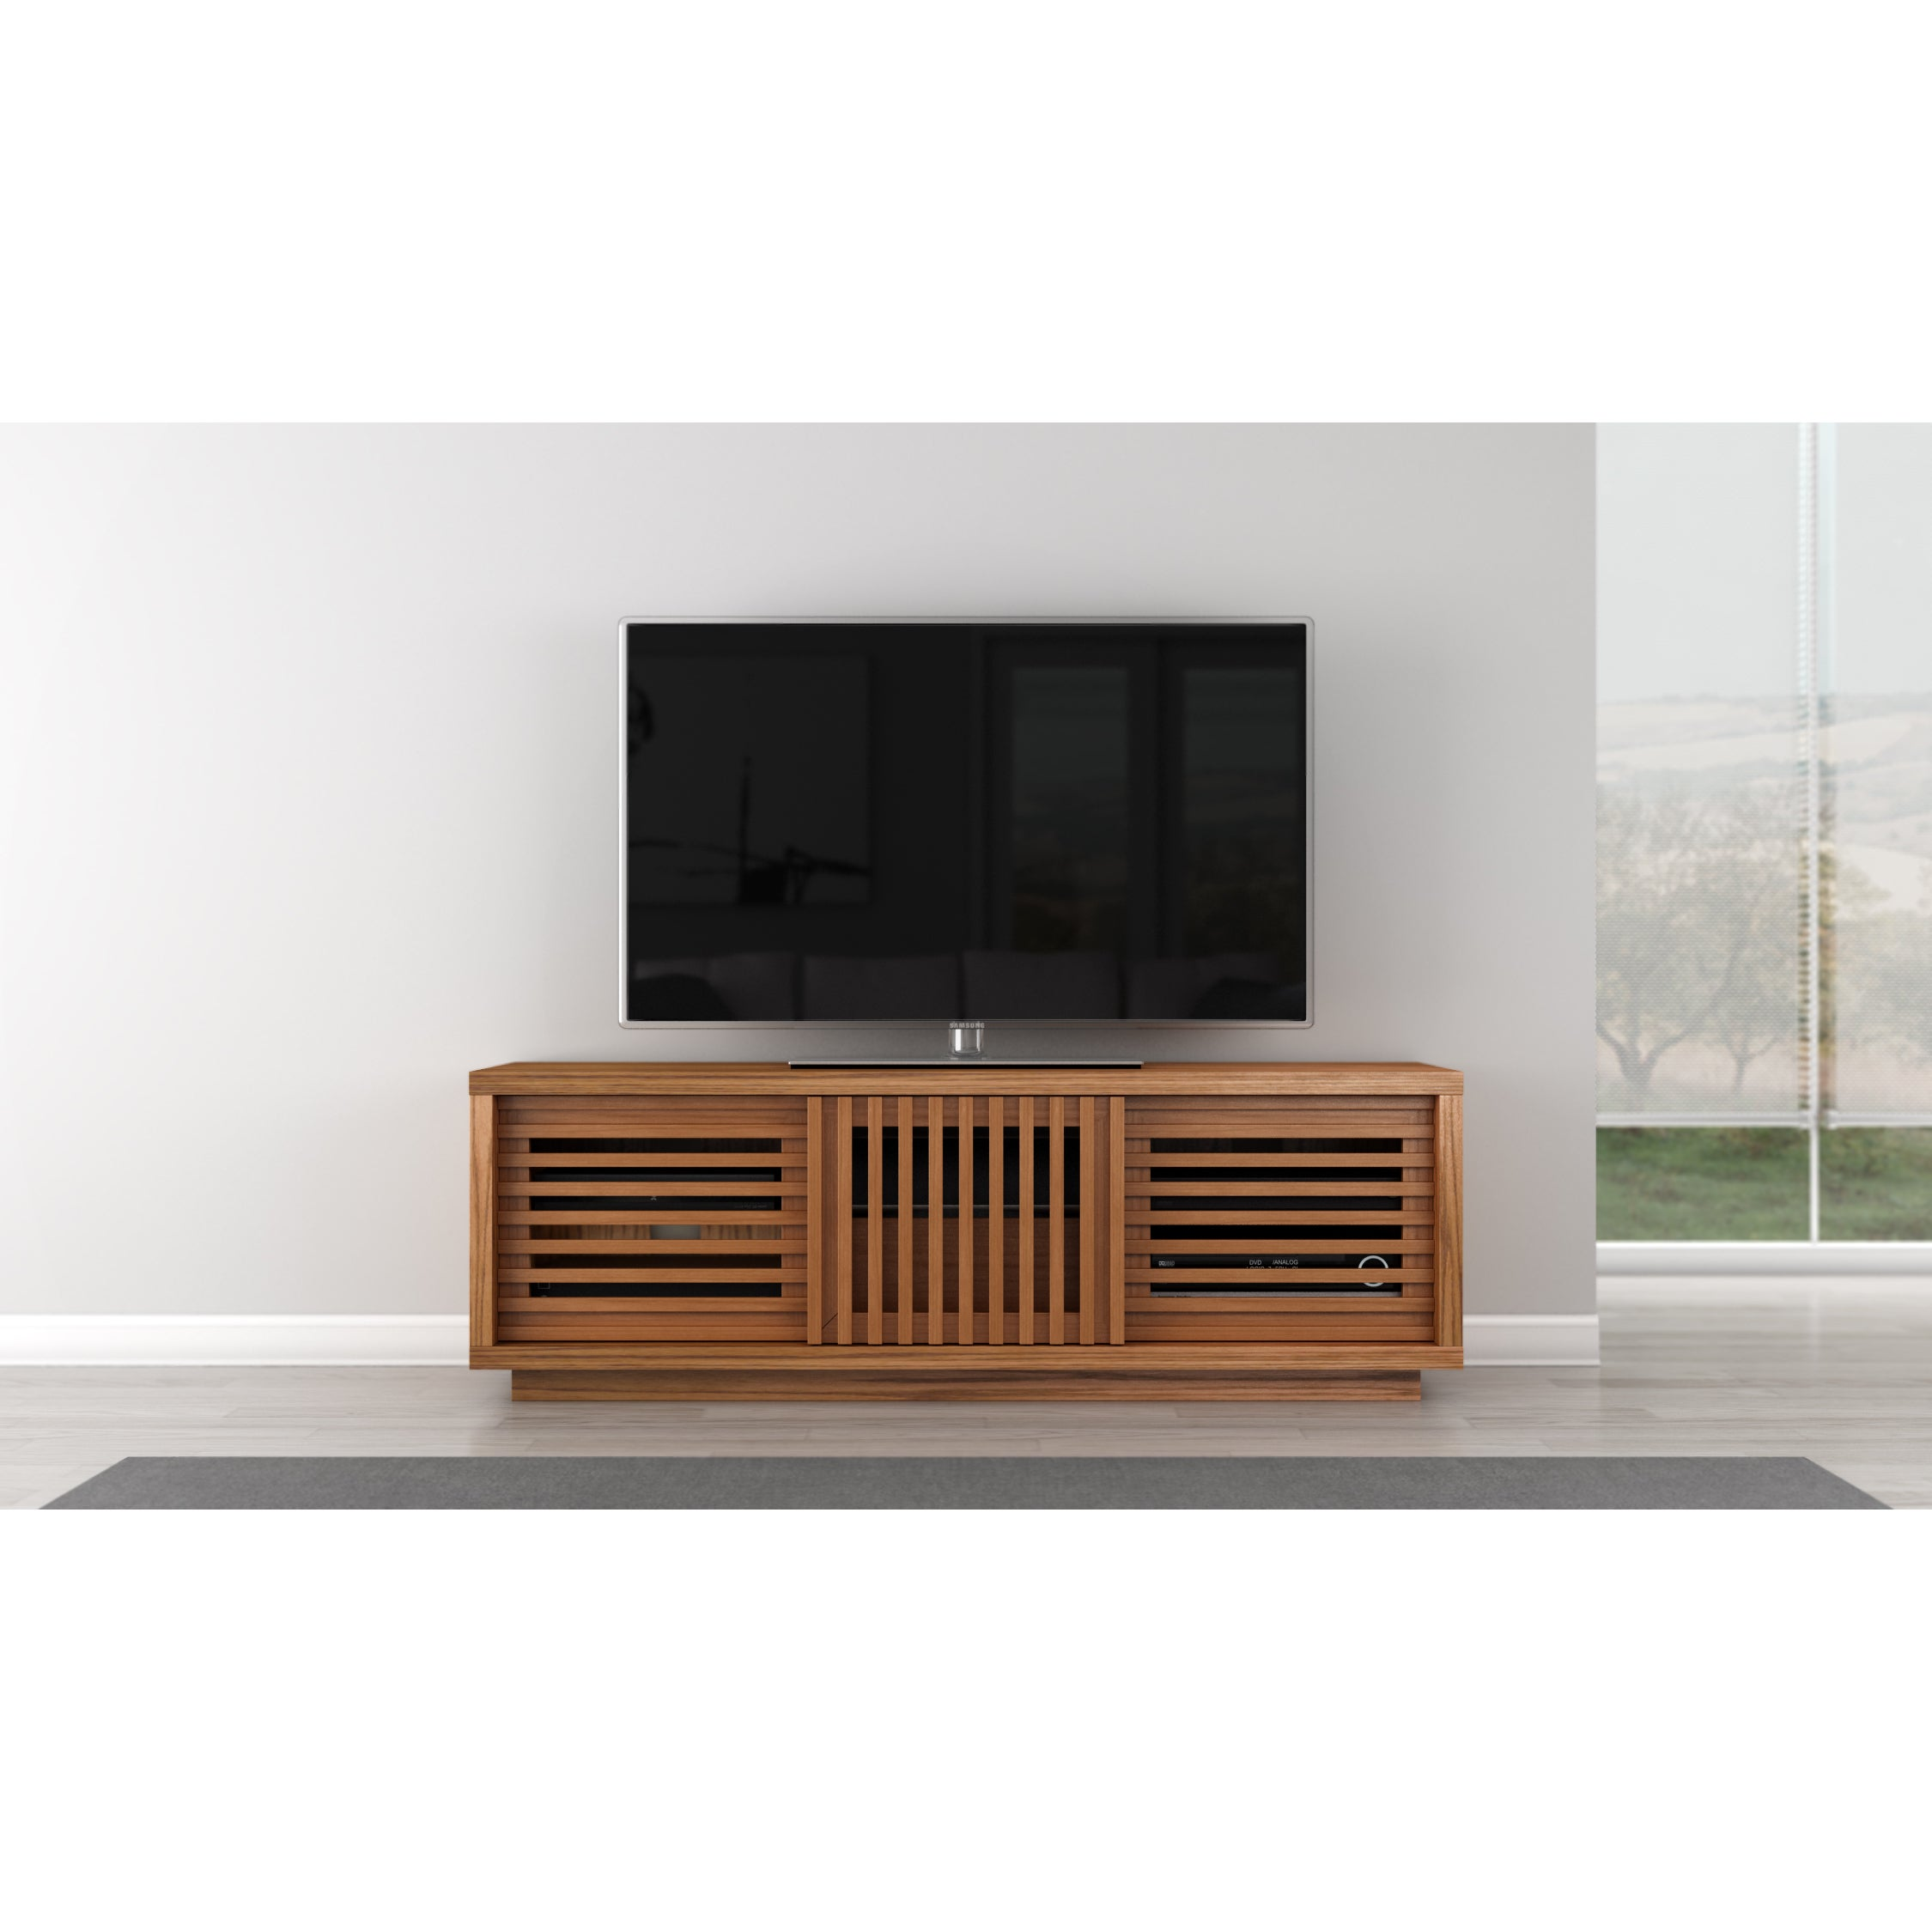 Shop 64 Inch Contemporary Rustic Media Console Free Shipping Today Overstock 11820857